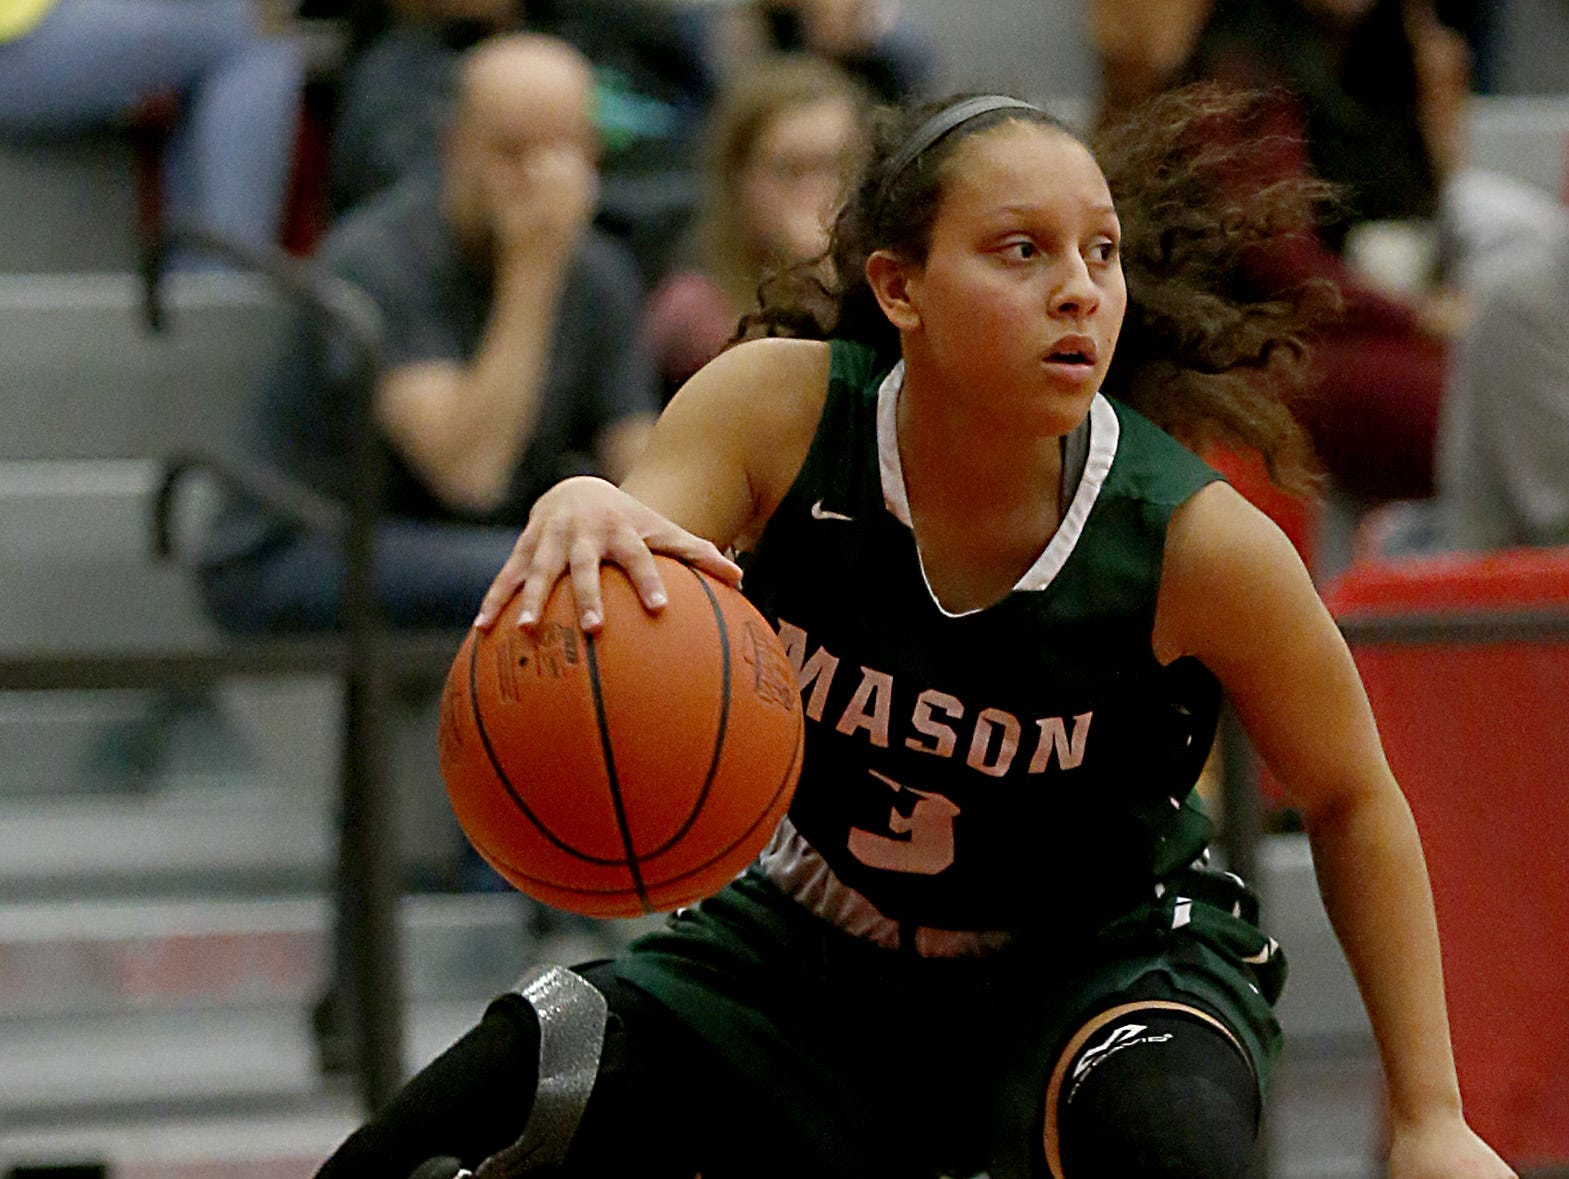 Mason's Sade Tucker moves the ball against Mercy McAuley during the Southwest District Girls Division I finals at Princeton High School in Cincinnati Saturday, March 2, 2019.